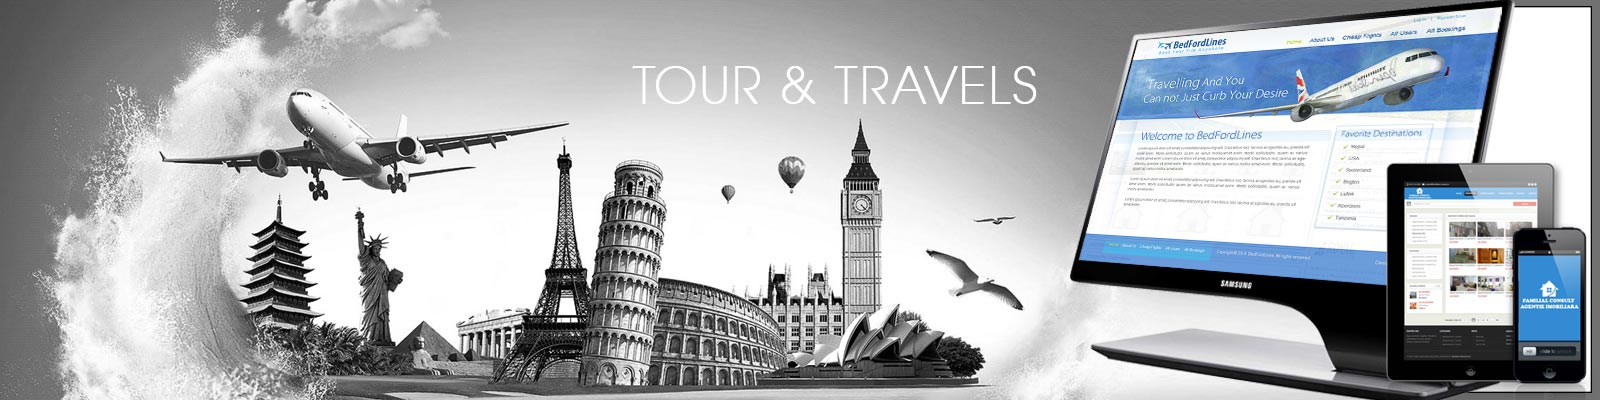 tours and travel solutions